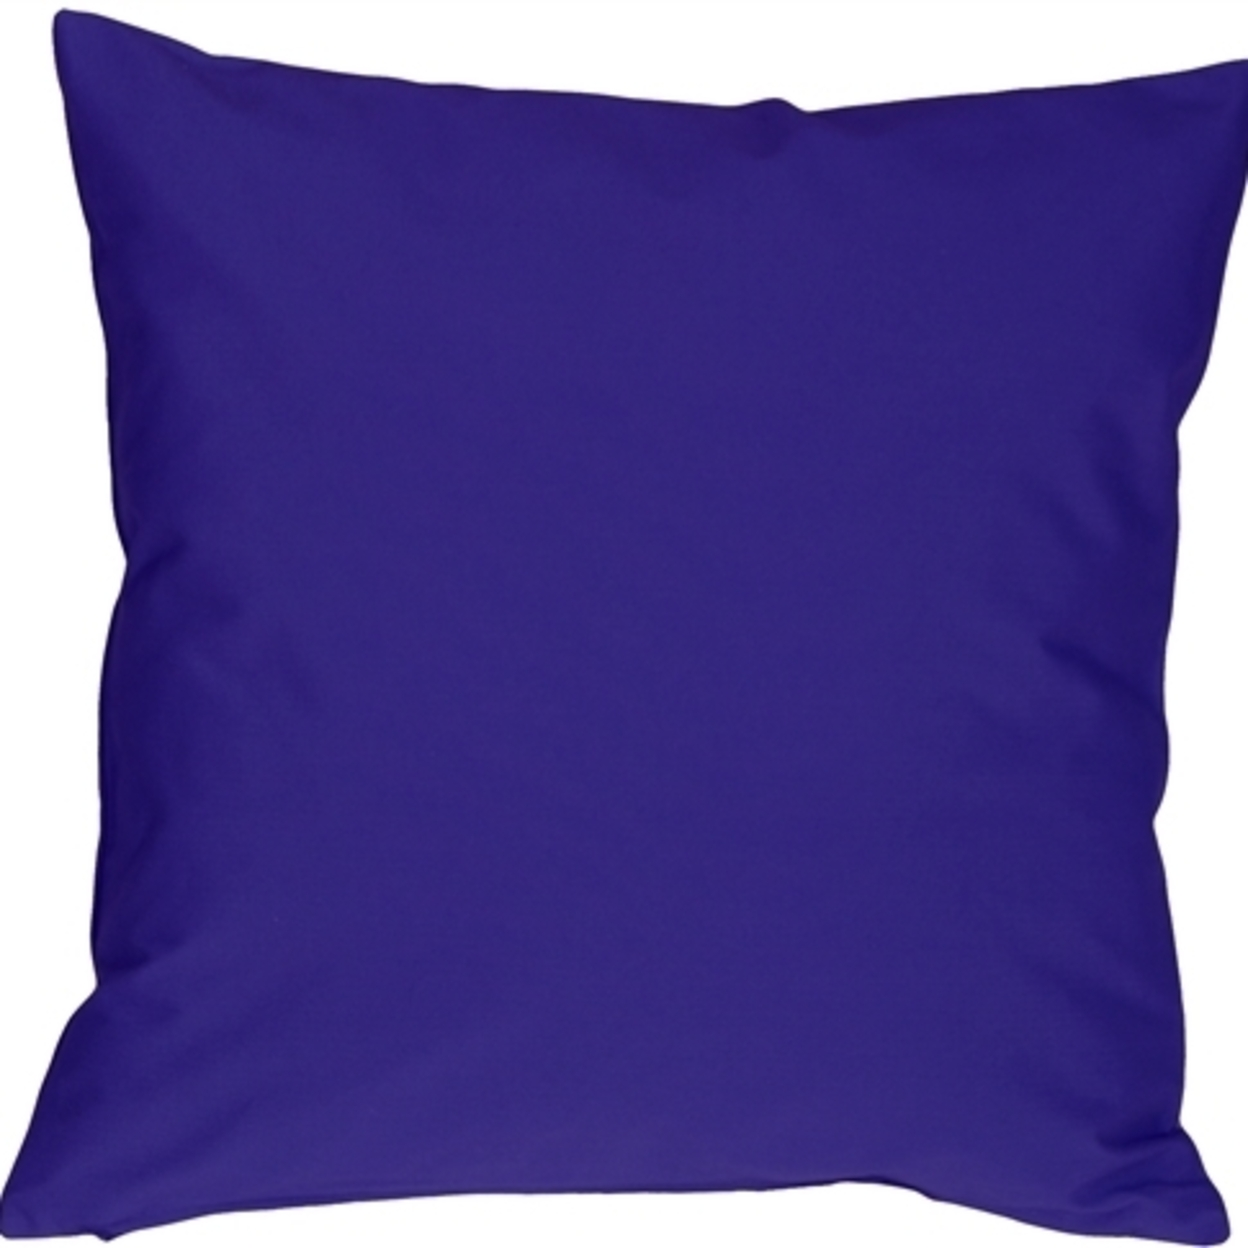 Pillow Decor Caravan Cotton Royal Blue 20x20 Throw Pillow